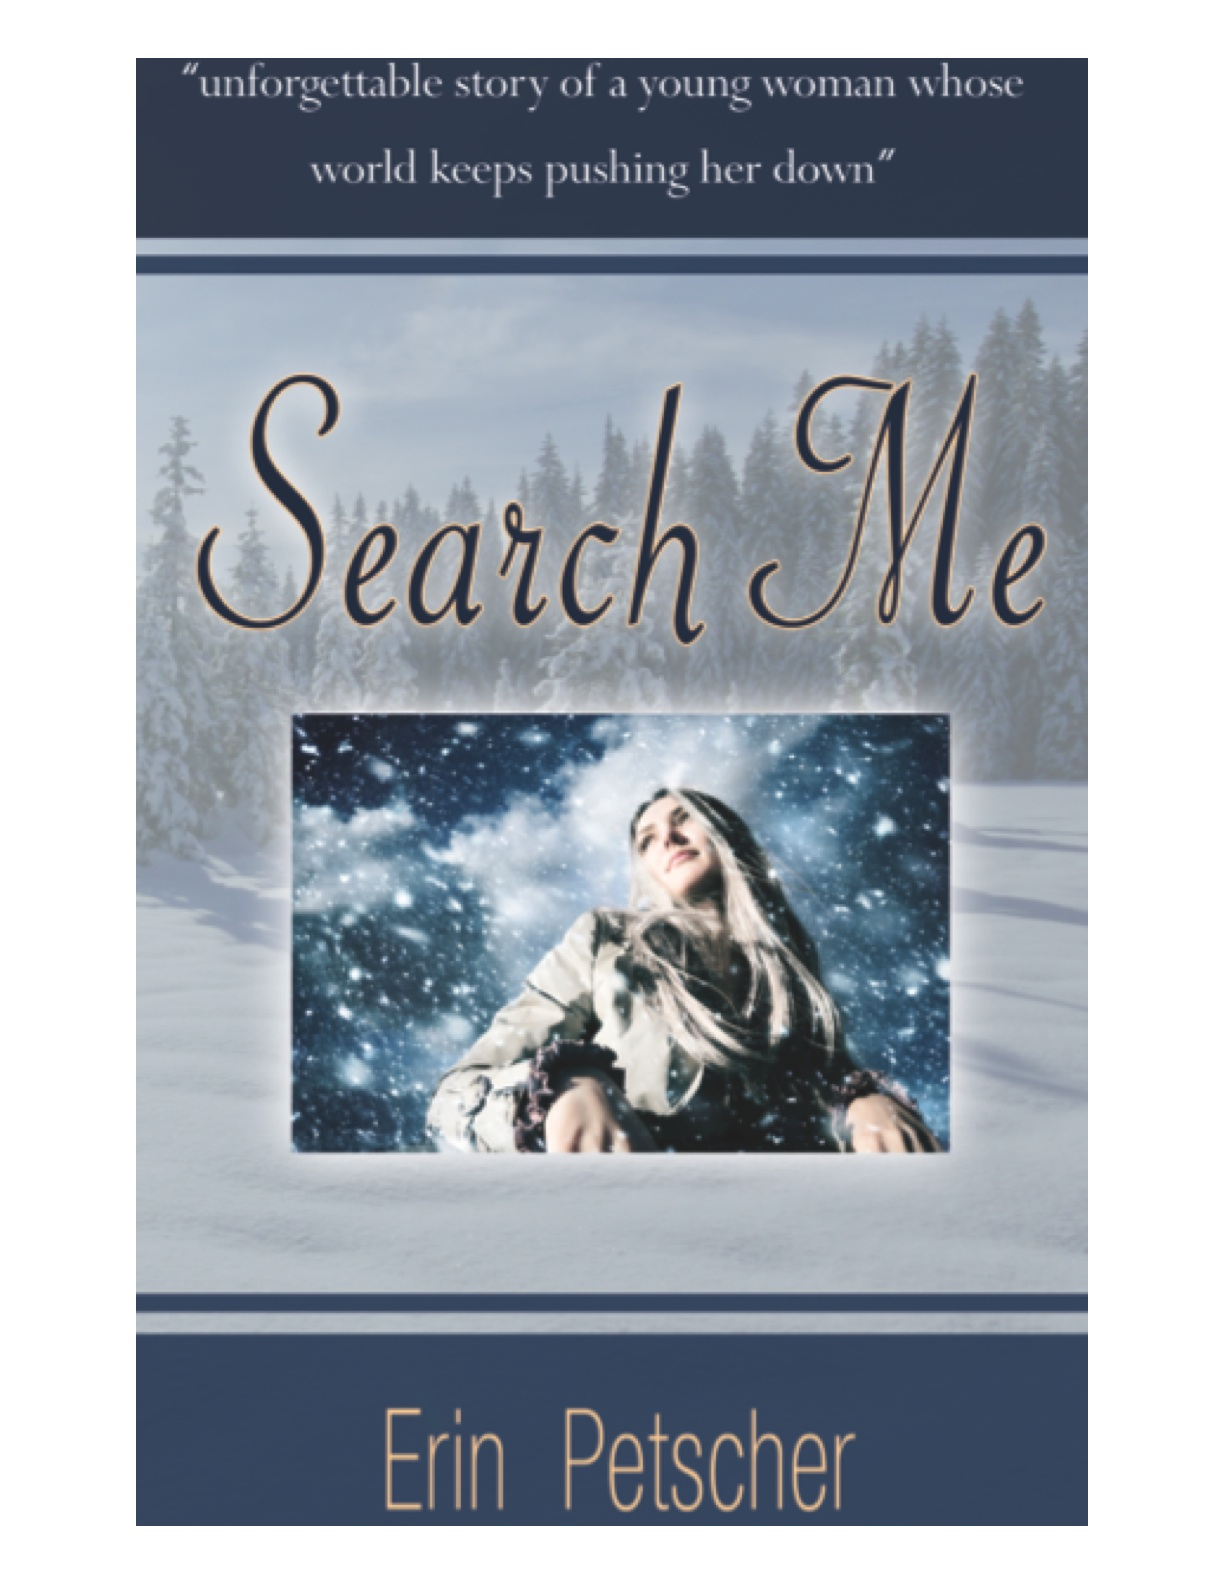 Search_me_small_cover_original